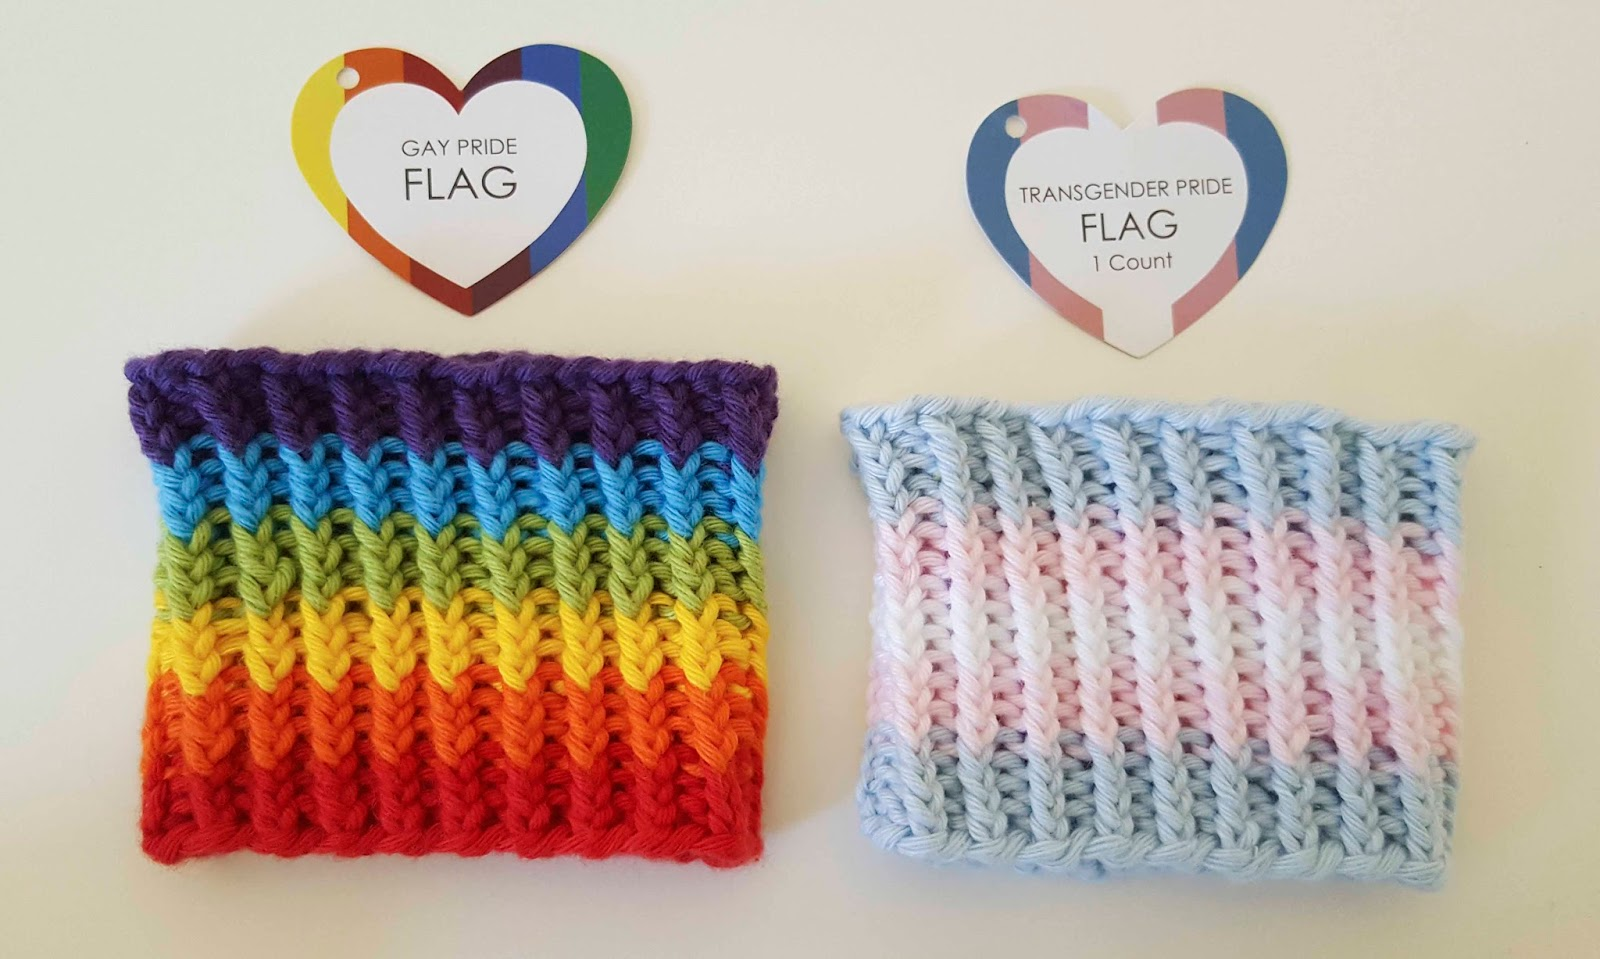 ChemKnits: Celebrate Equality Wristbands